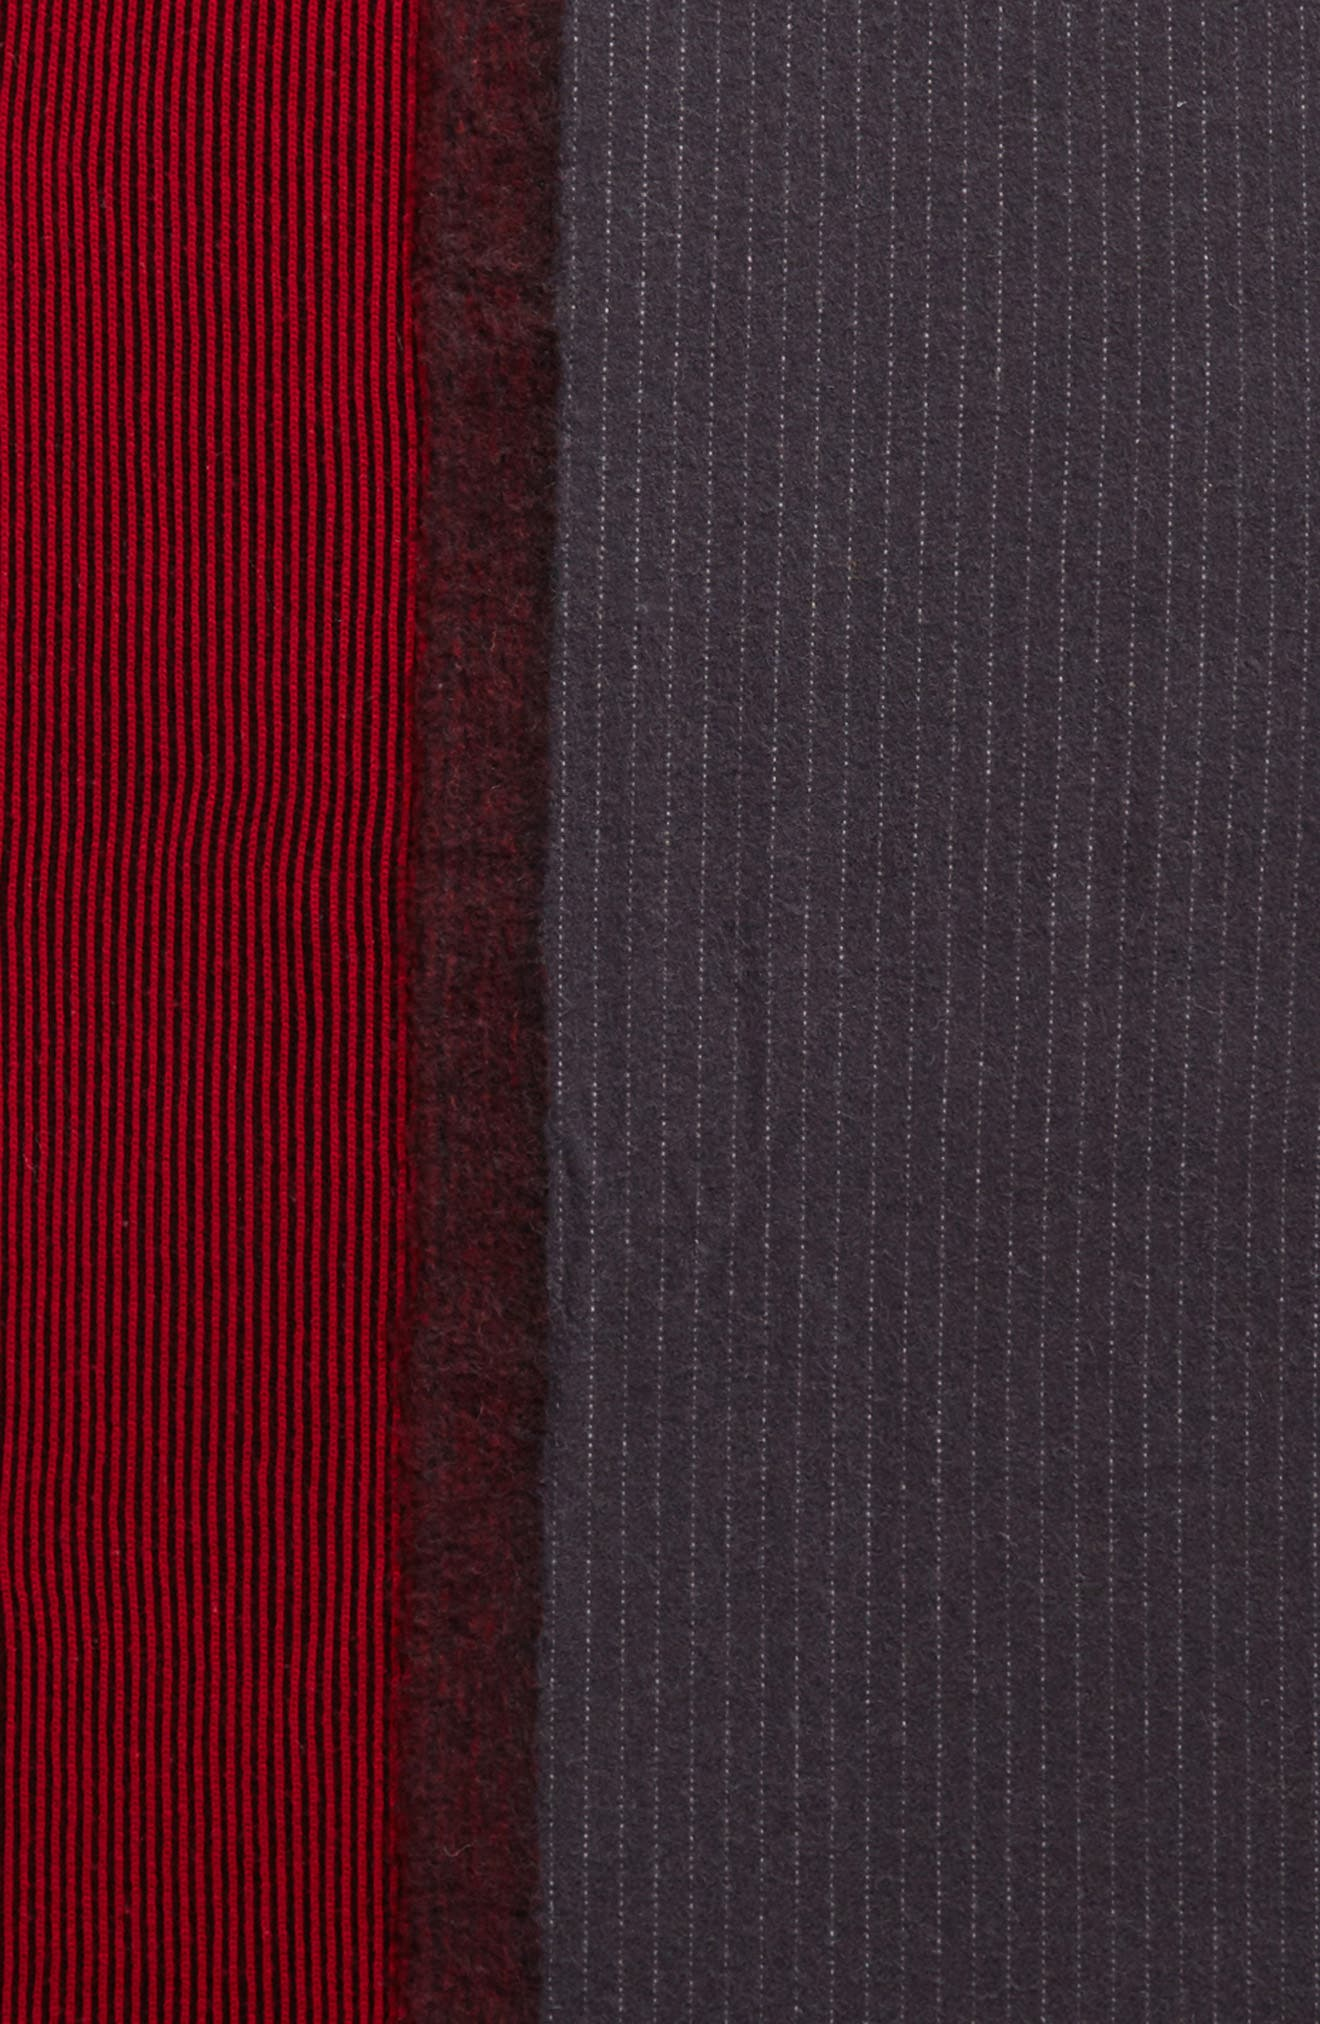 Pinstripe Wool & Cashmere Scarf,                             Alternate thumbnail 4, color,                             Navy/ Red